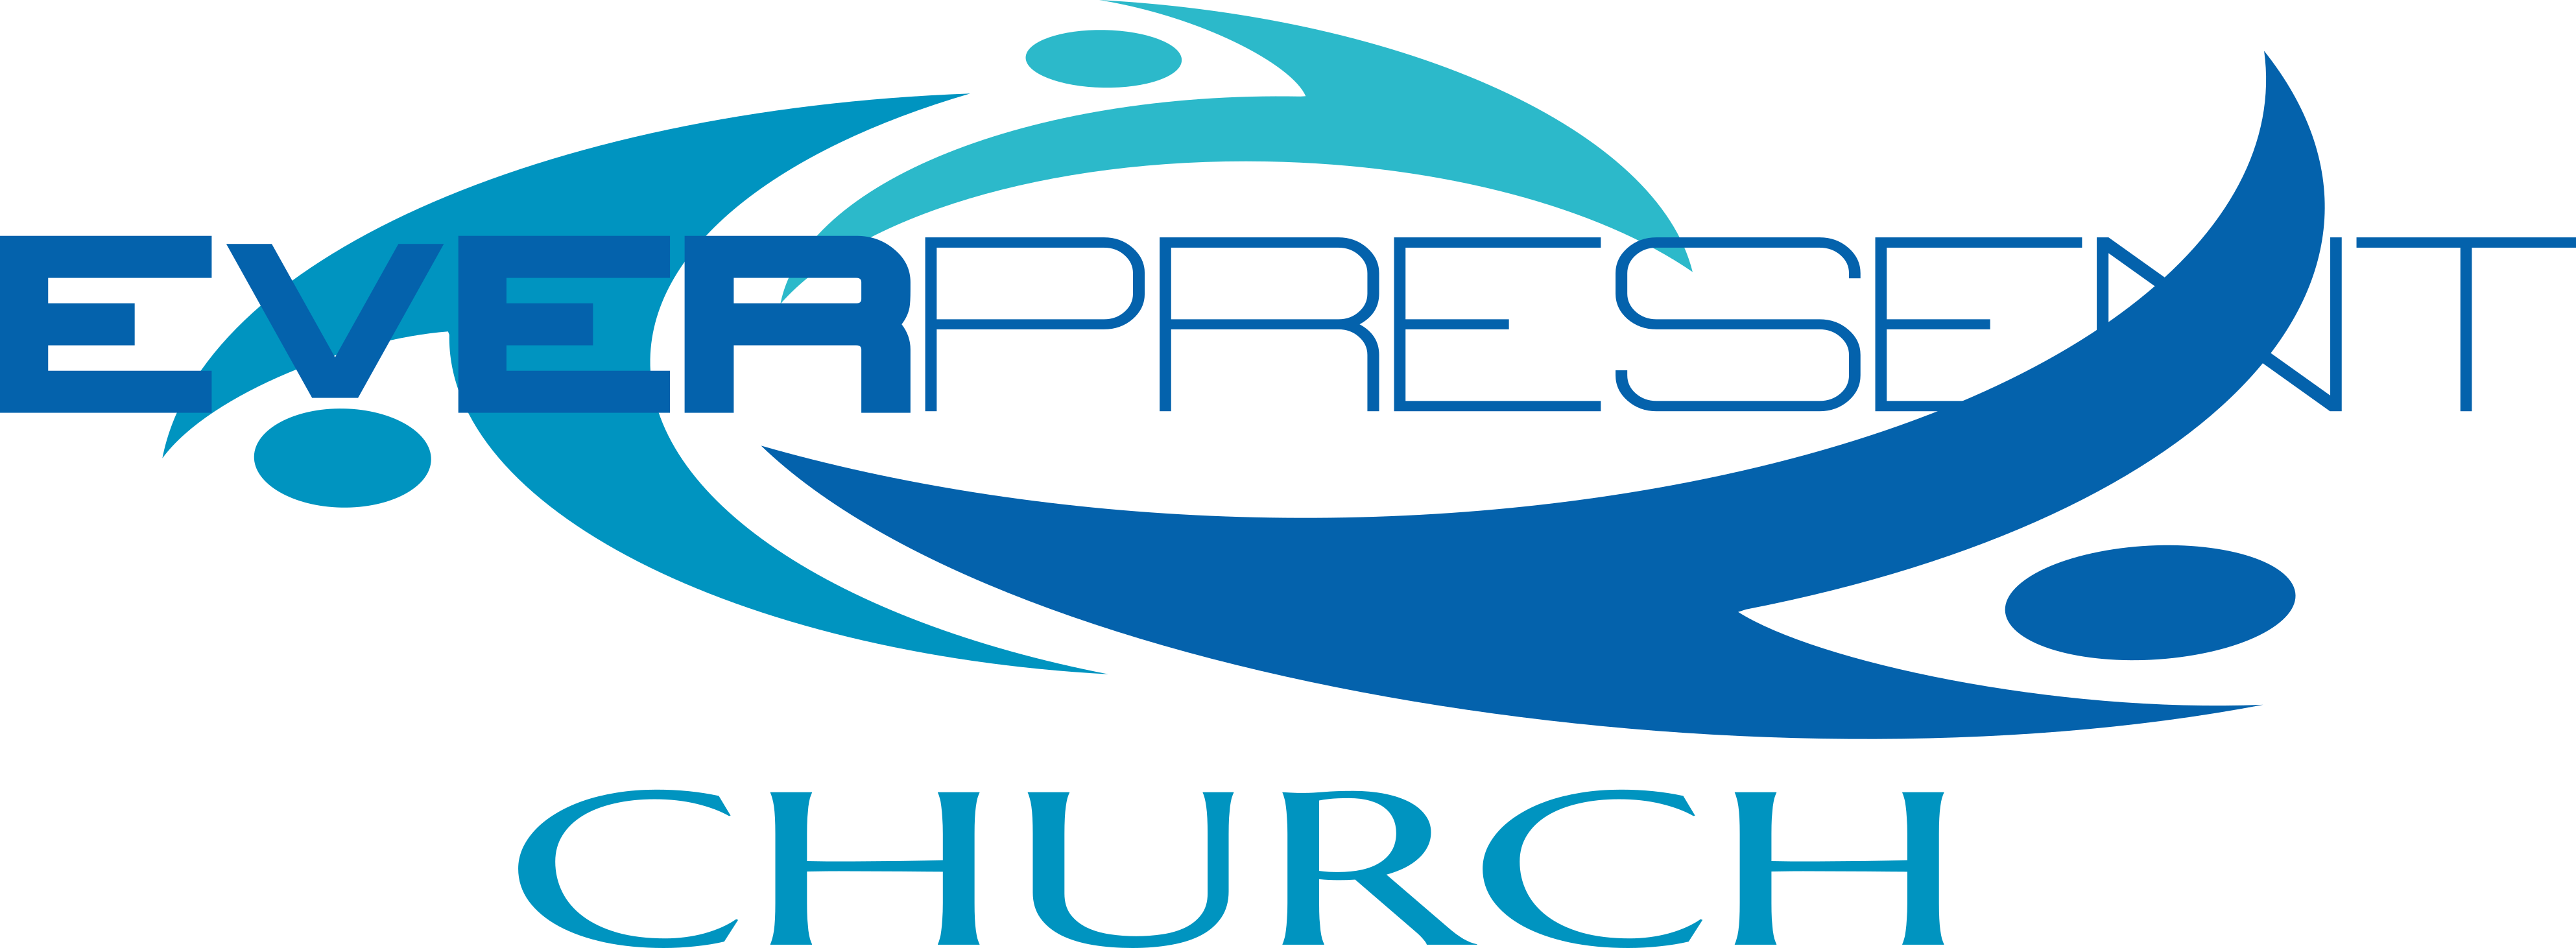 EverPresent Church, Batavia, NY 14020